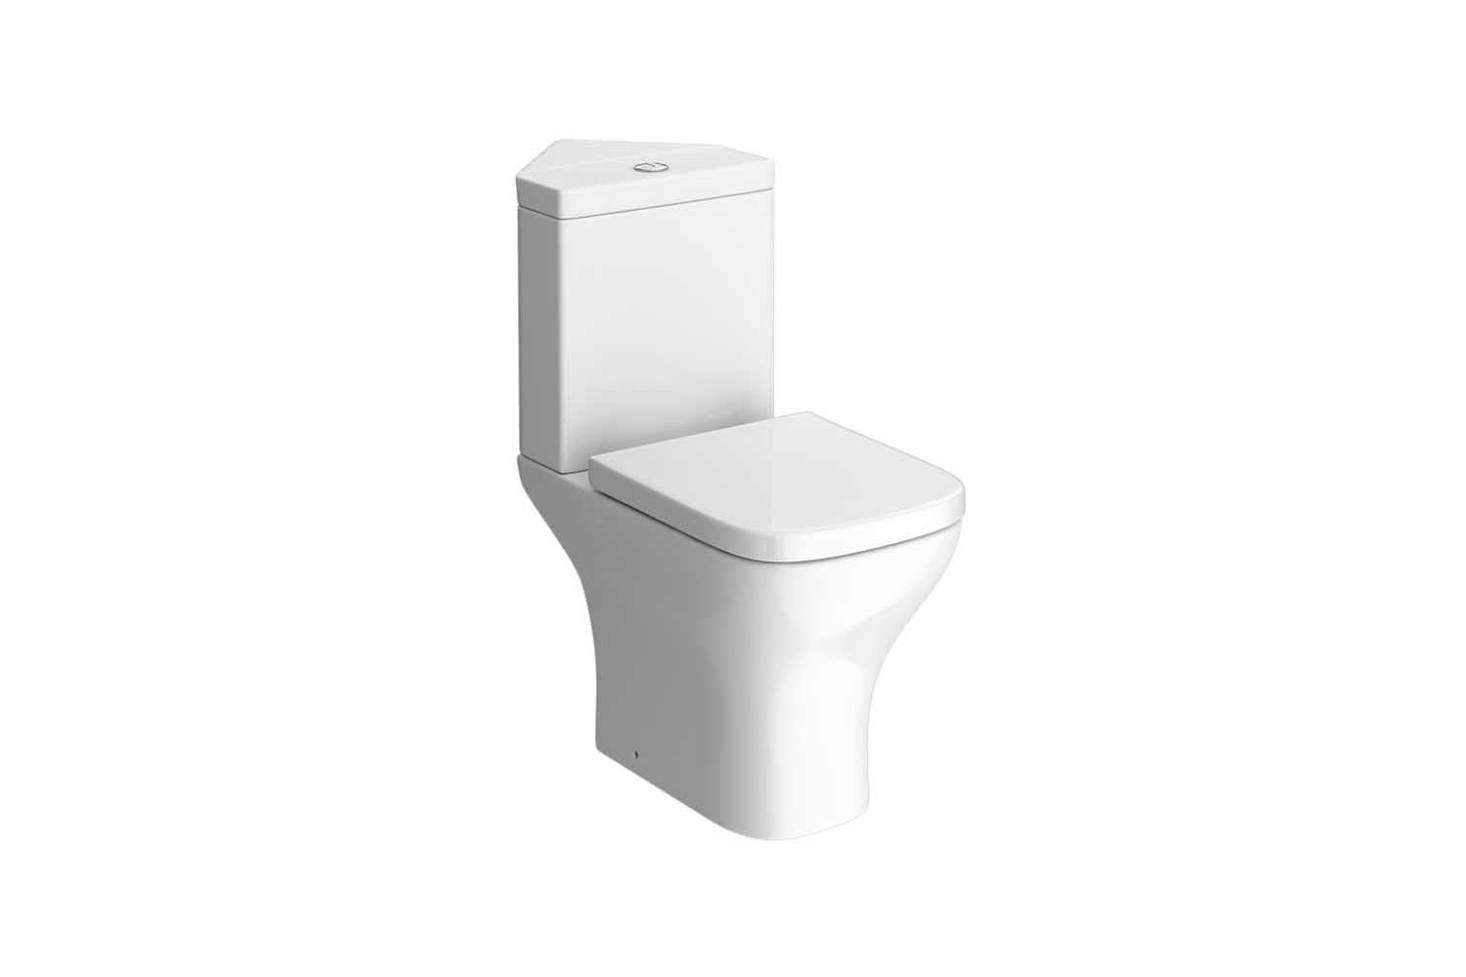 Astounding 10 Easy Pieces Corner Toilets For Compact Bathrooms Pdpeps Interior Chair Design Pdpepsorg